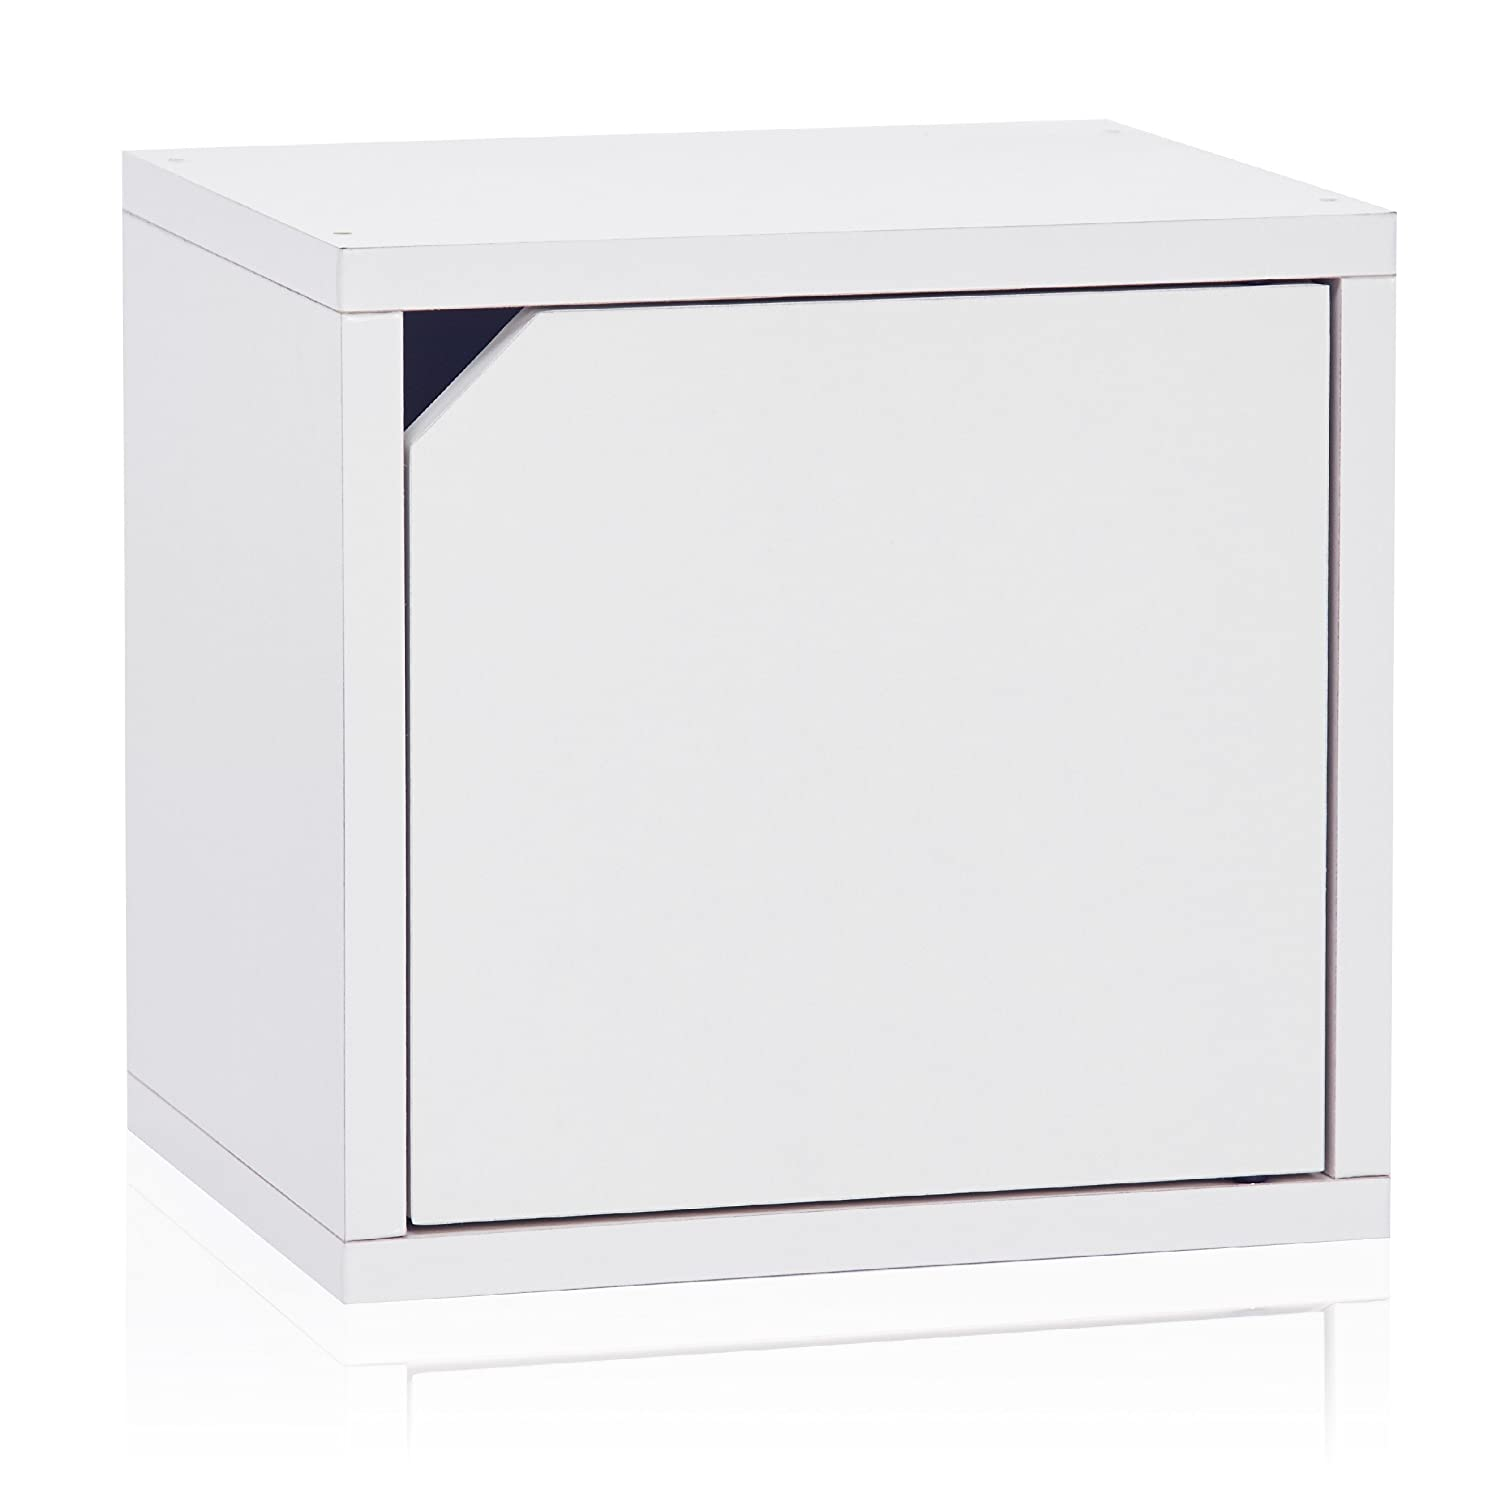 Way Basics Eco Stackable Connect Storage Cube Cubby Organizer with Door, White (Tool-Free Assembly and Uniquely Crafted from Sustainable Non Toxic zBoard Paperboard)